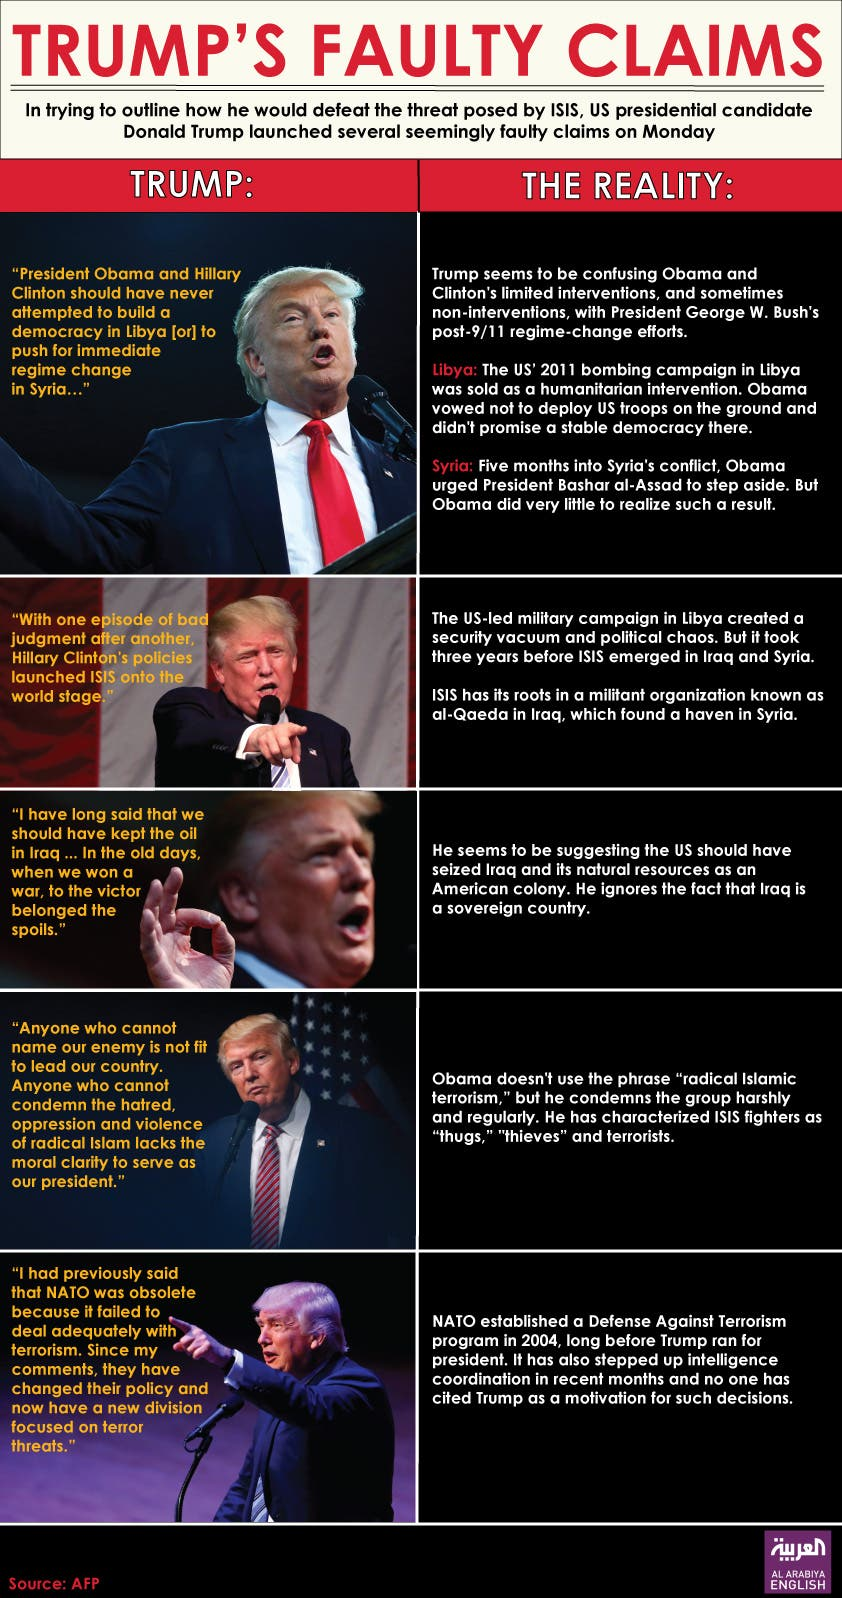 Infographic: Trump's faulty claims